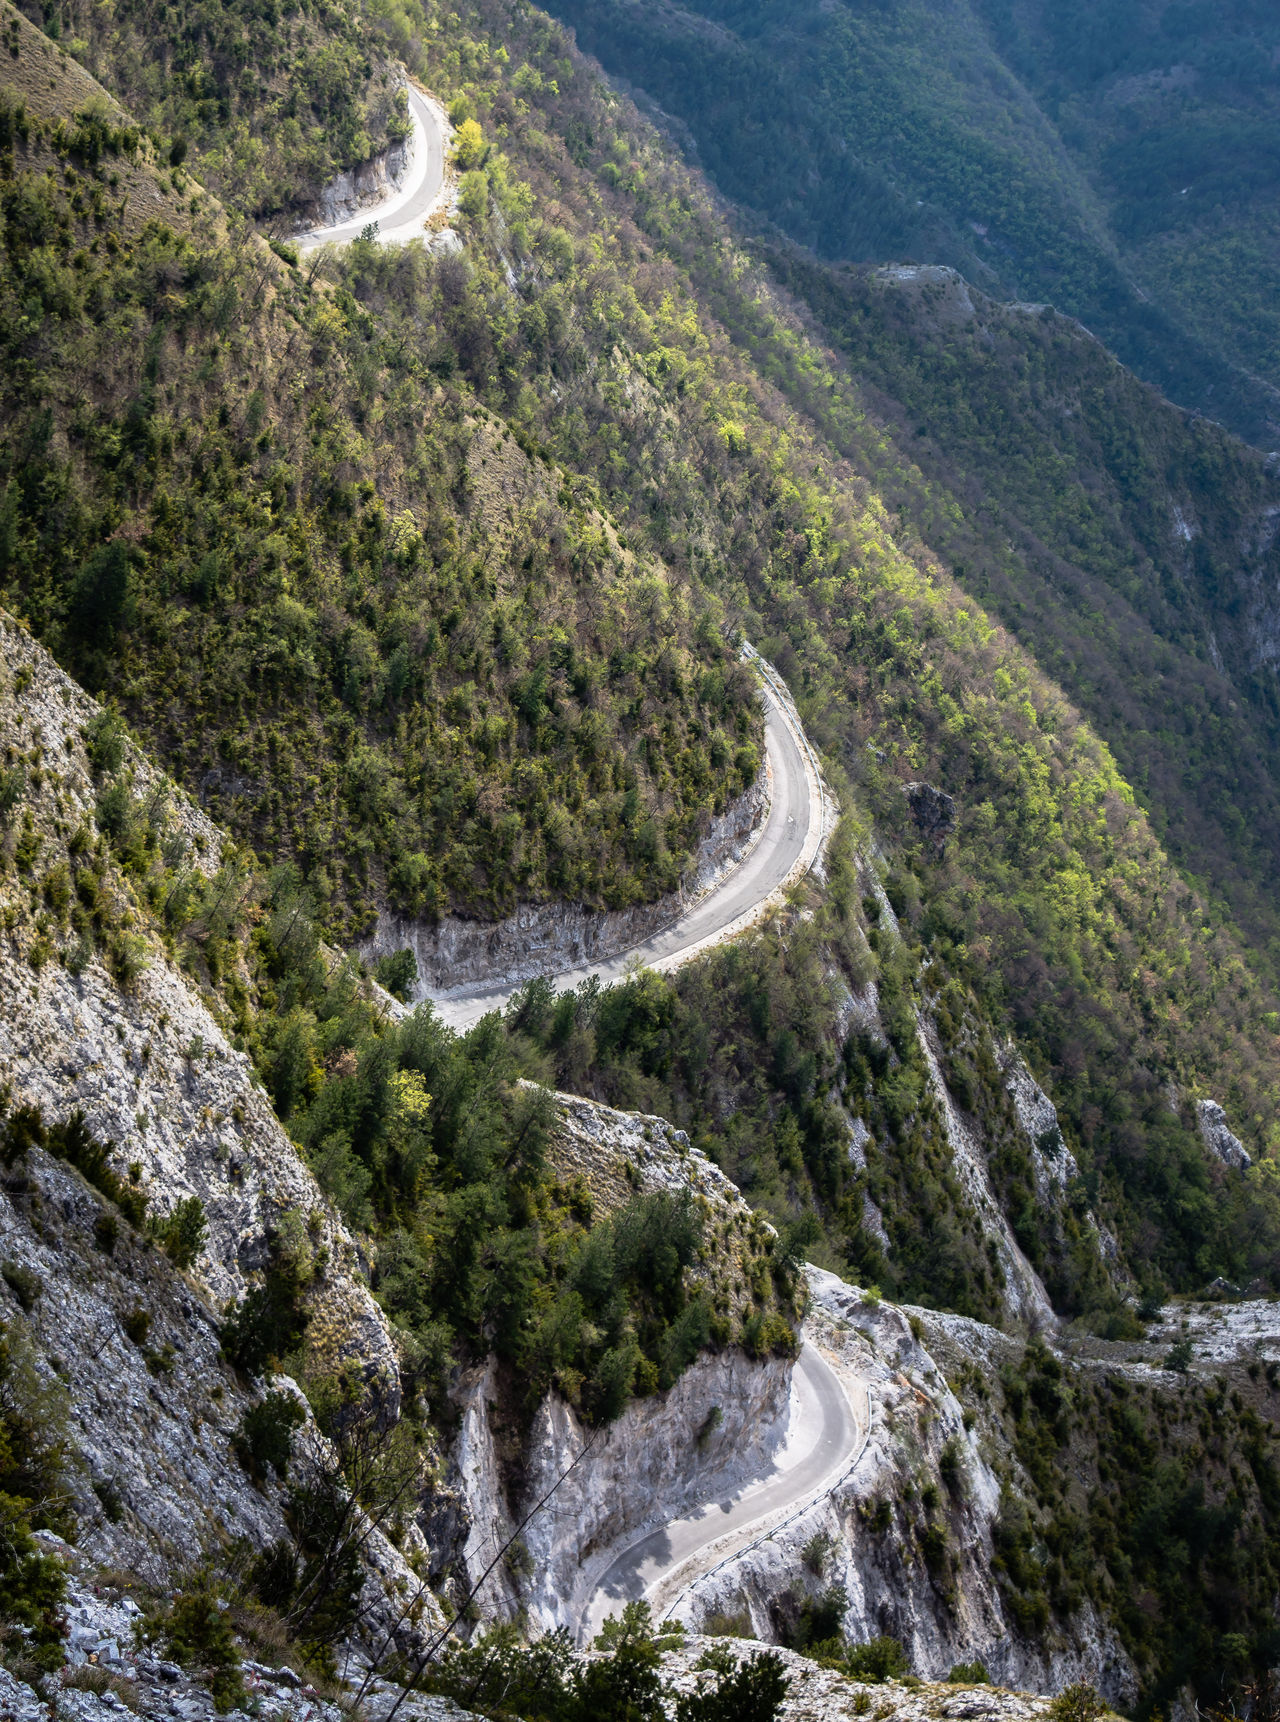 Triple C Abandoned Chicane Curve Day Explore Forest Green High Angle View Kozjak Lake Landscape Macedonia Mountain Mountain Road Nature Nature Outdoors Road Road Rocks Spring Travel Trees